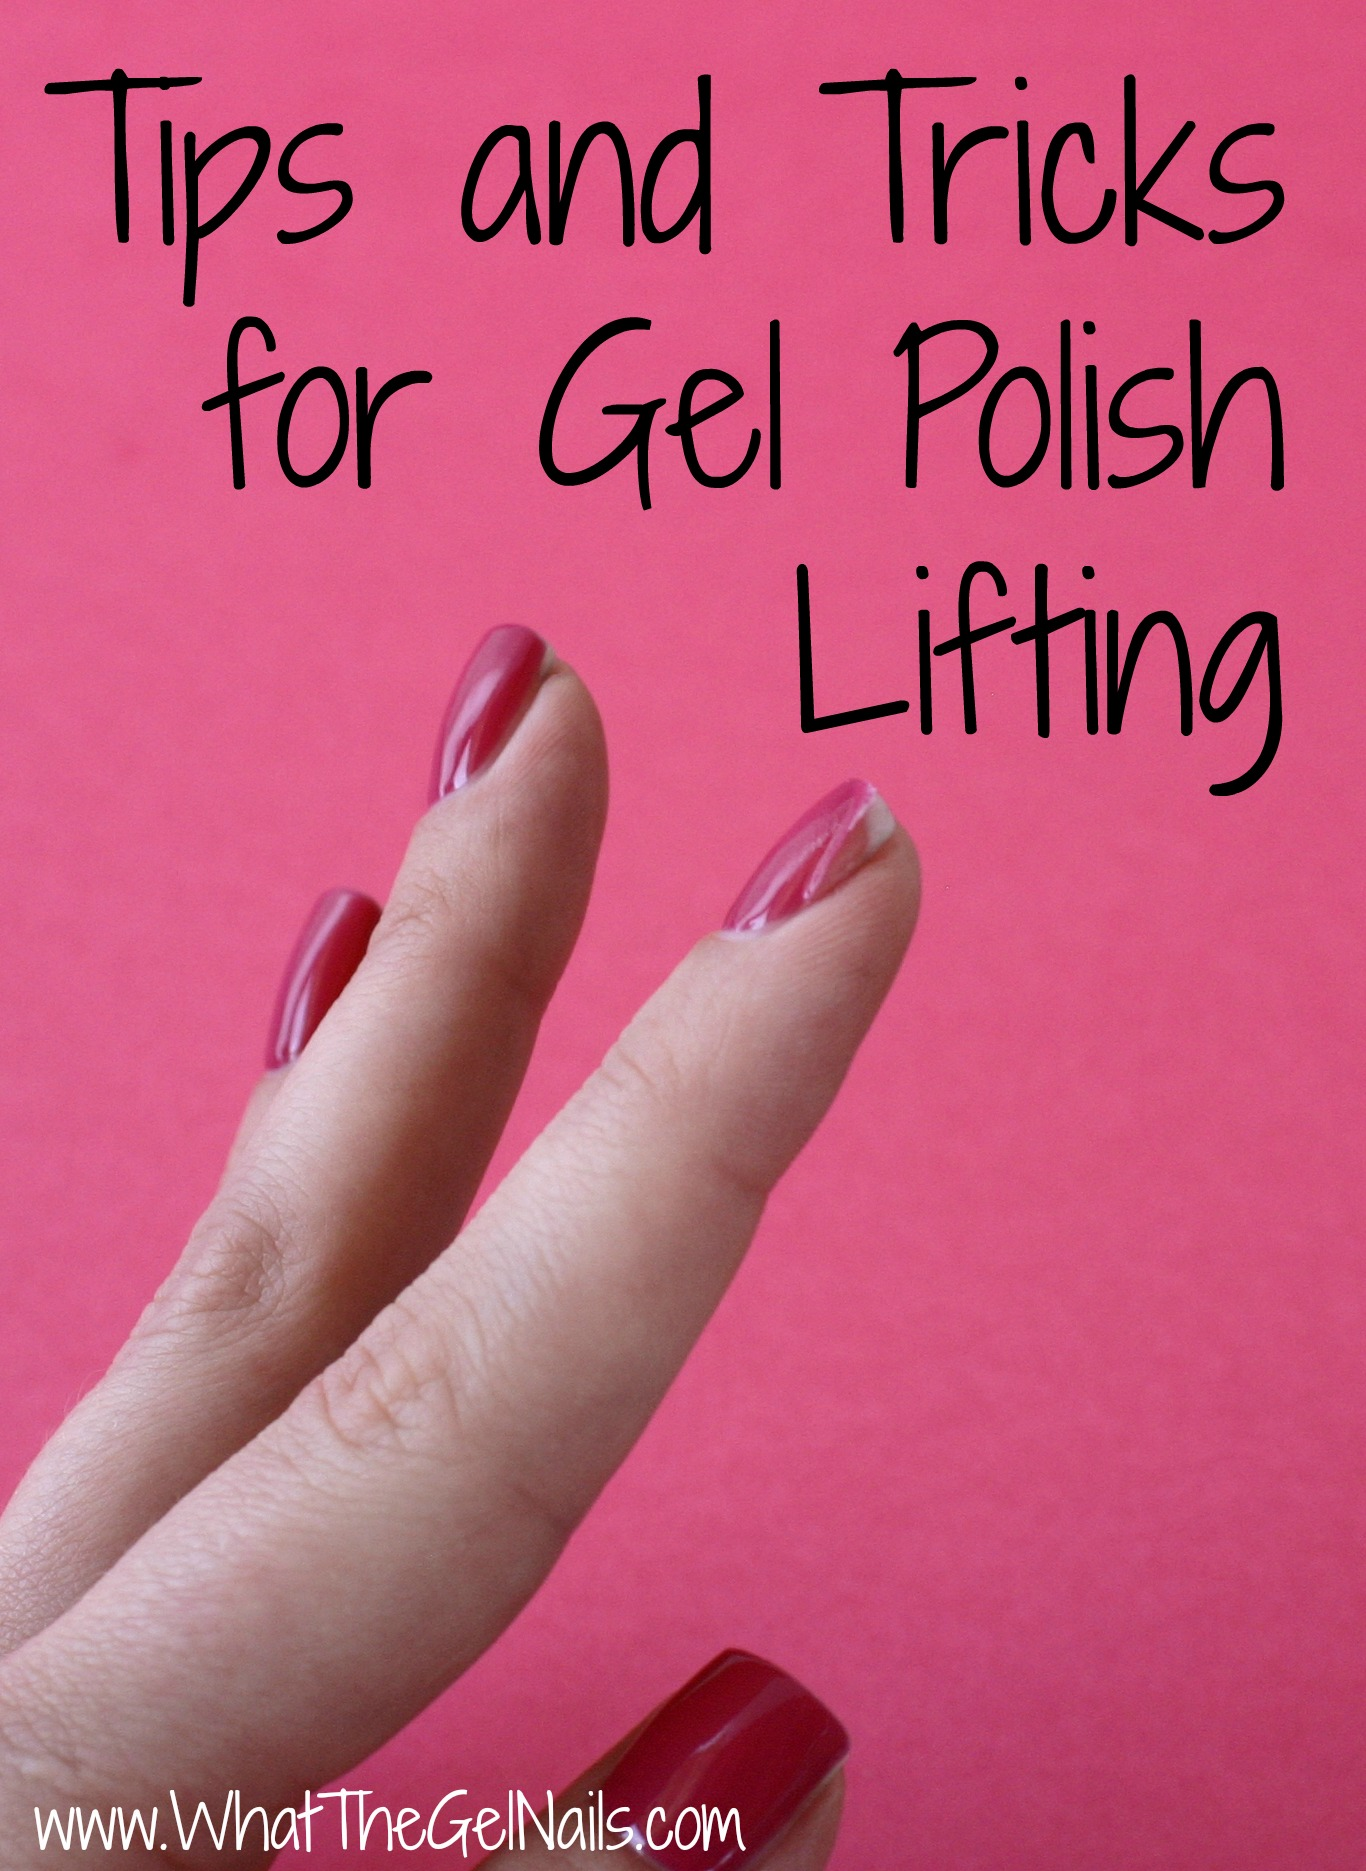 Tips and tricks for gel polish lifting solutioingenieria